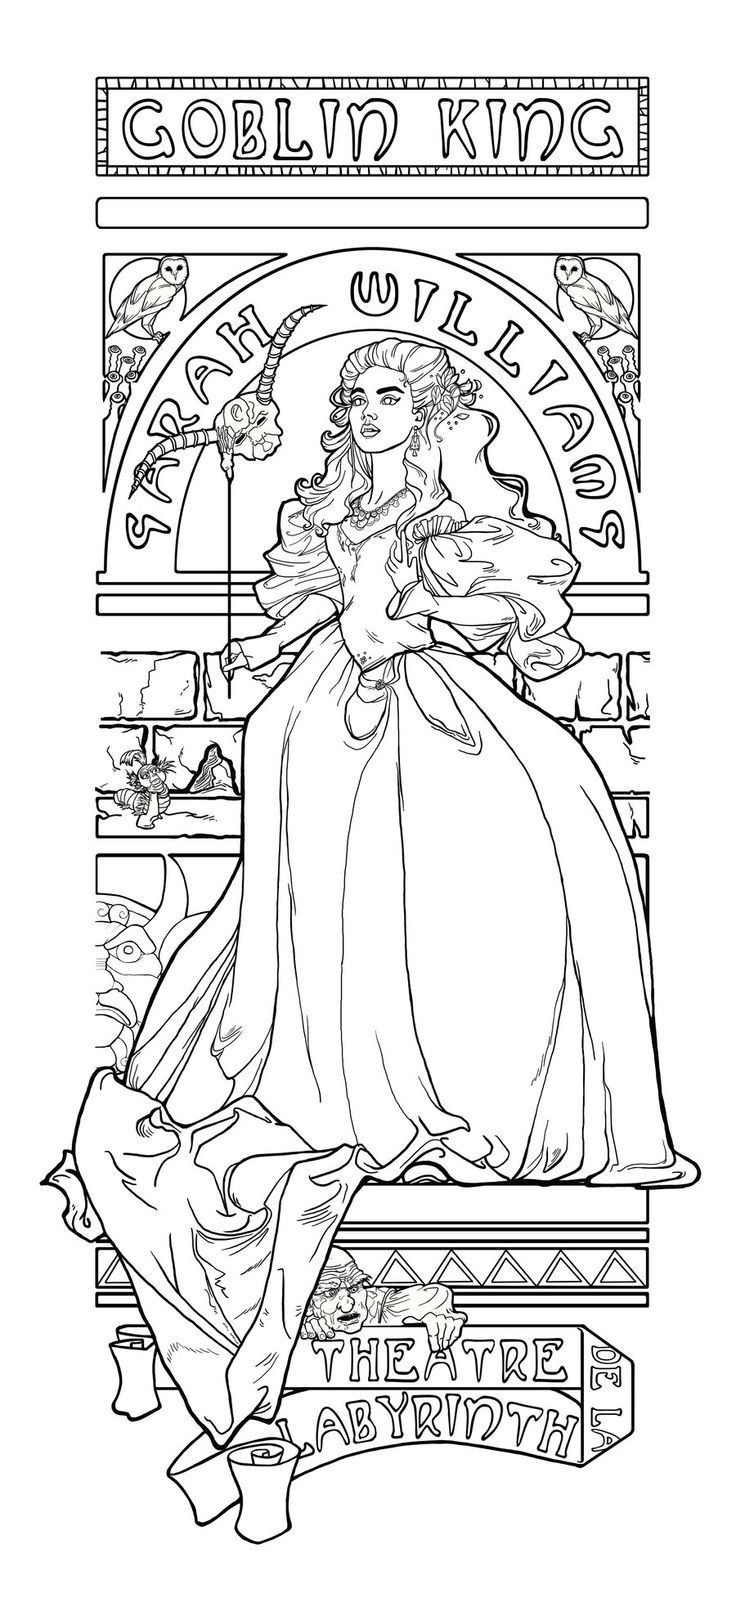 Adult coloring pictures google - Https Www Google Com Search Q Labyrinth Coloring